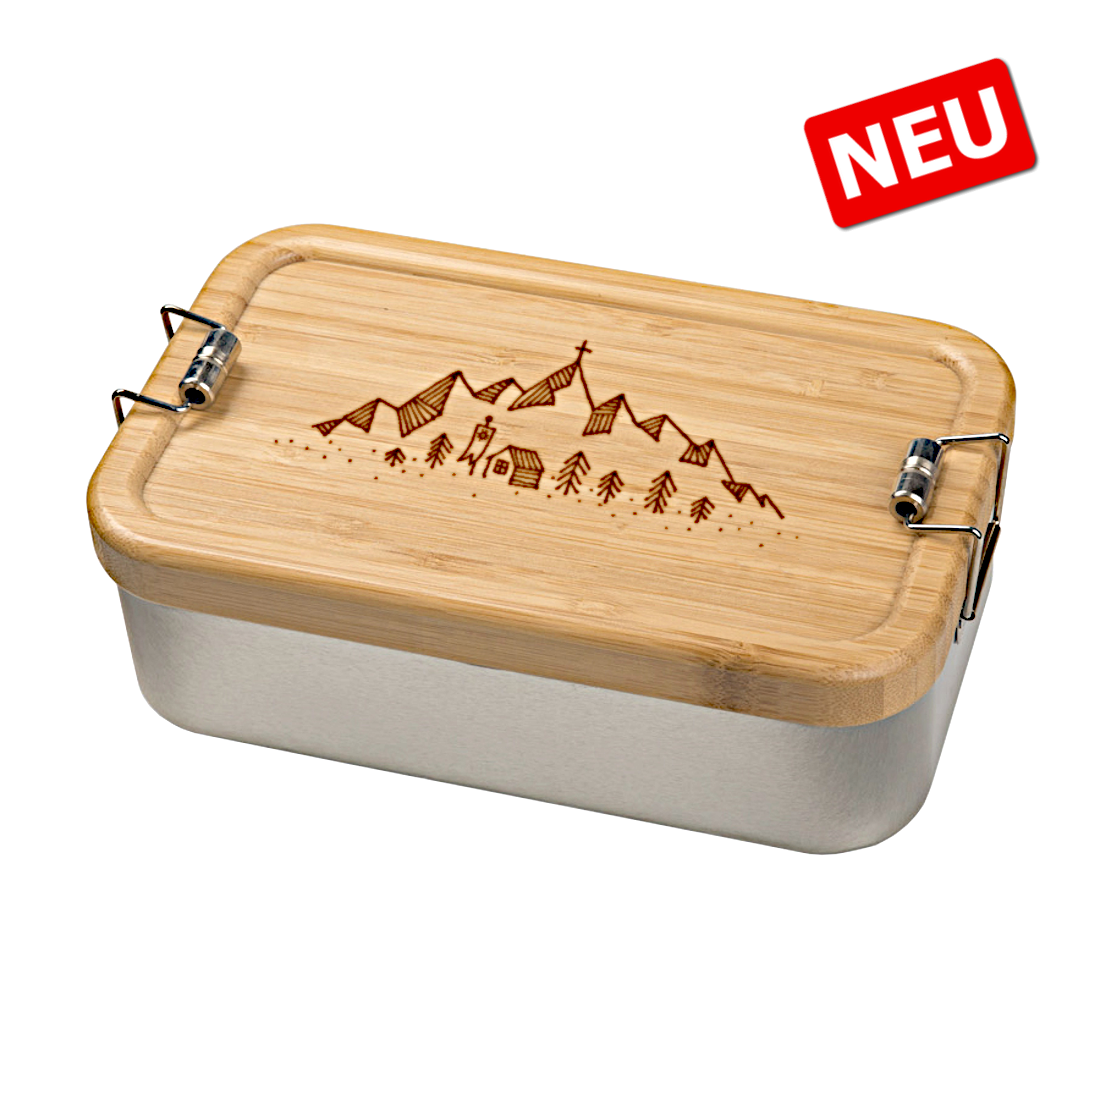 DAV Brotzeitbox mit Bambusdeckel